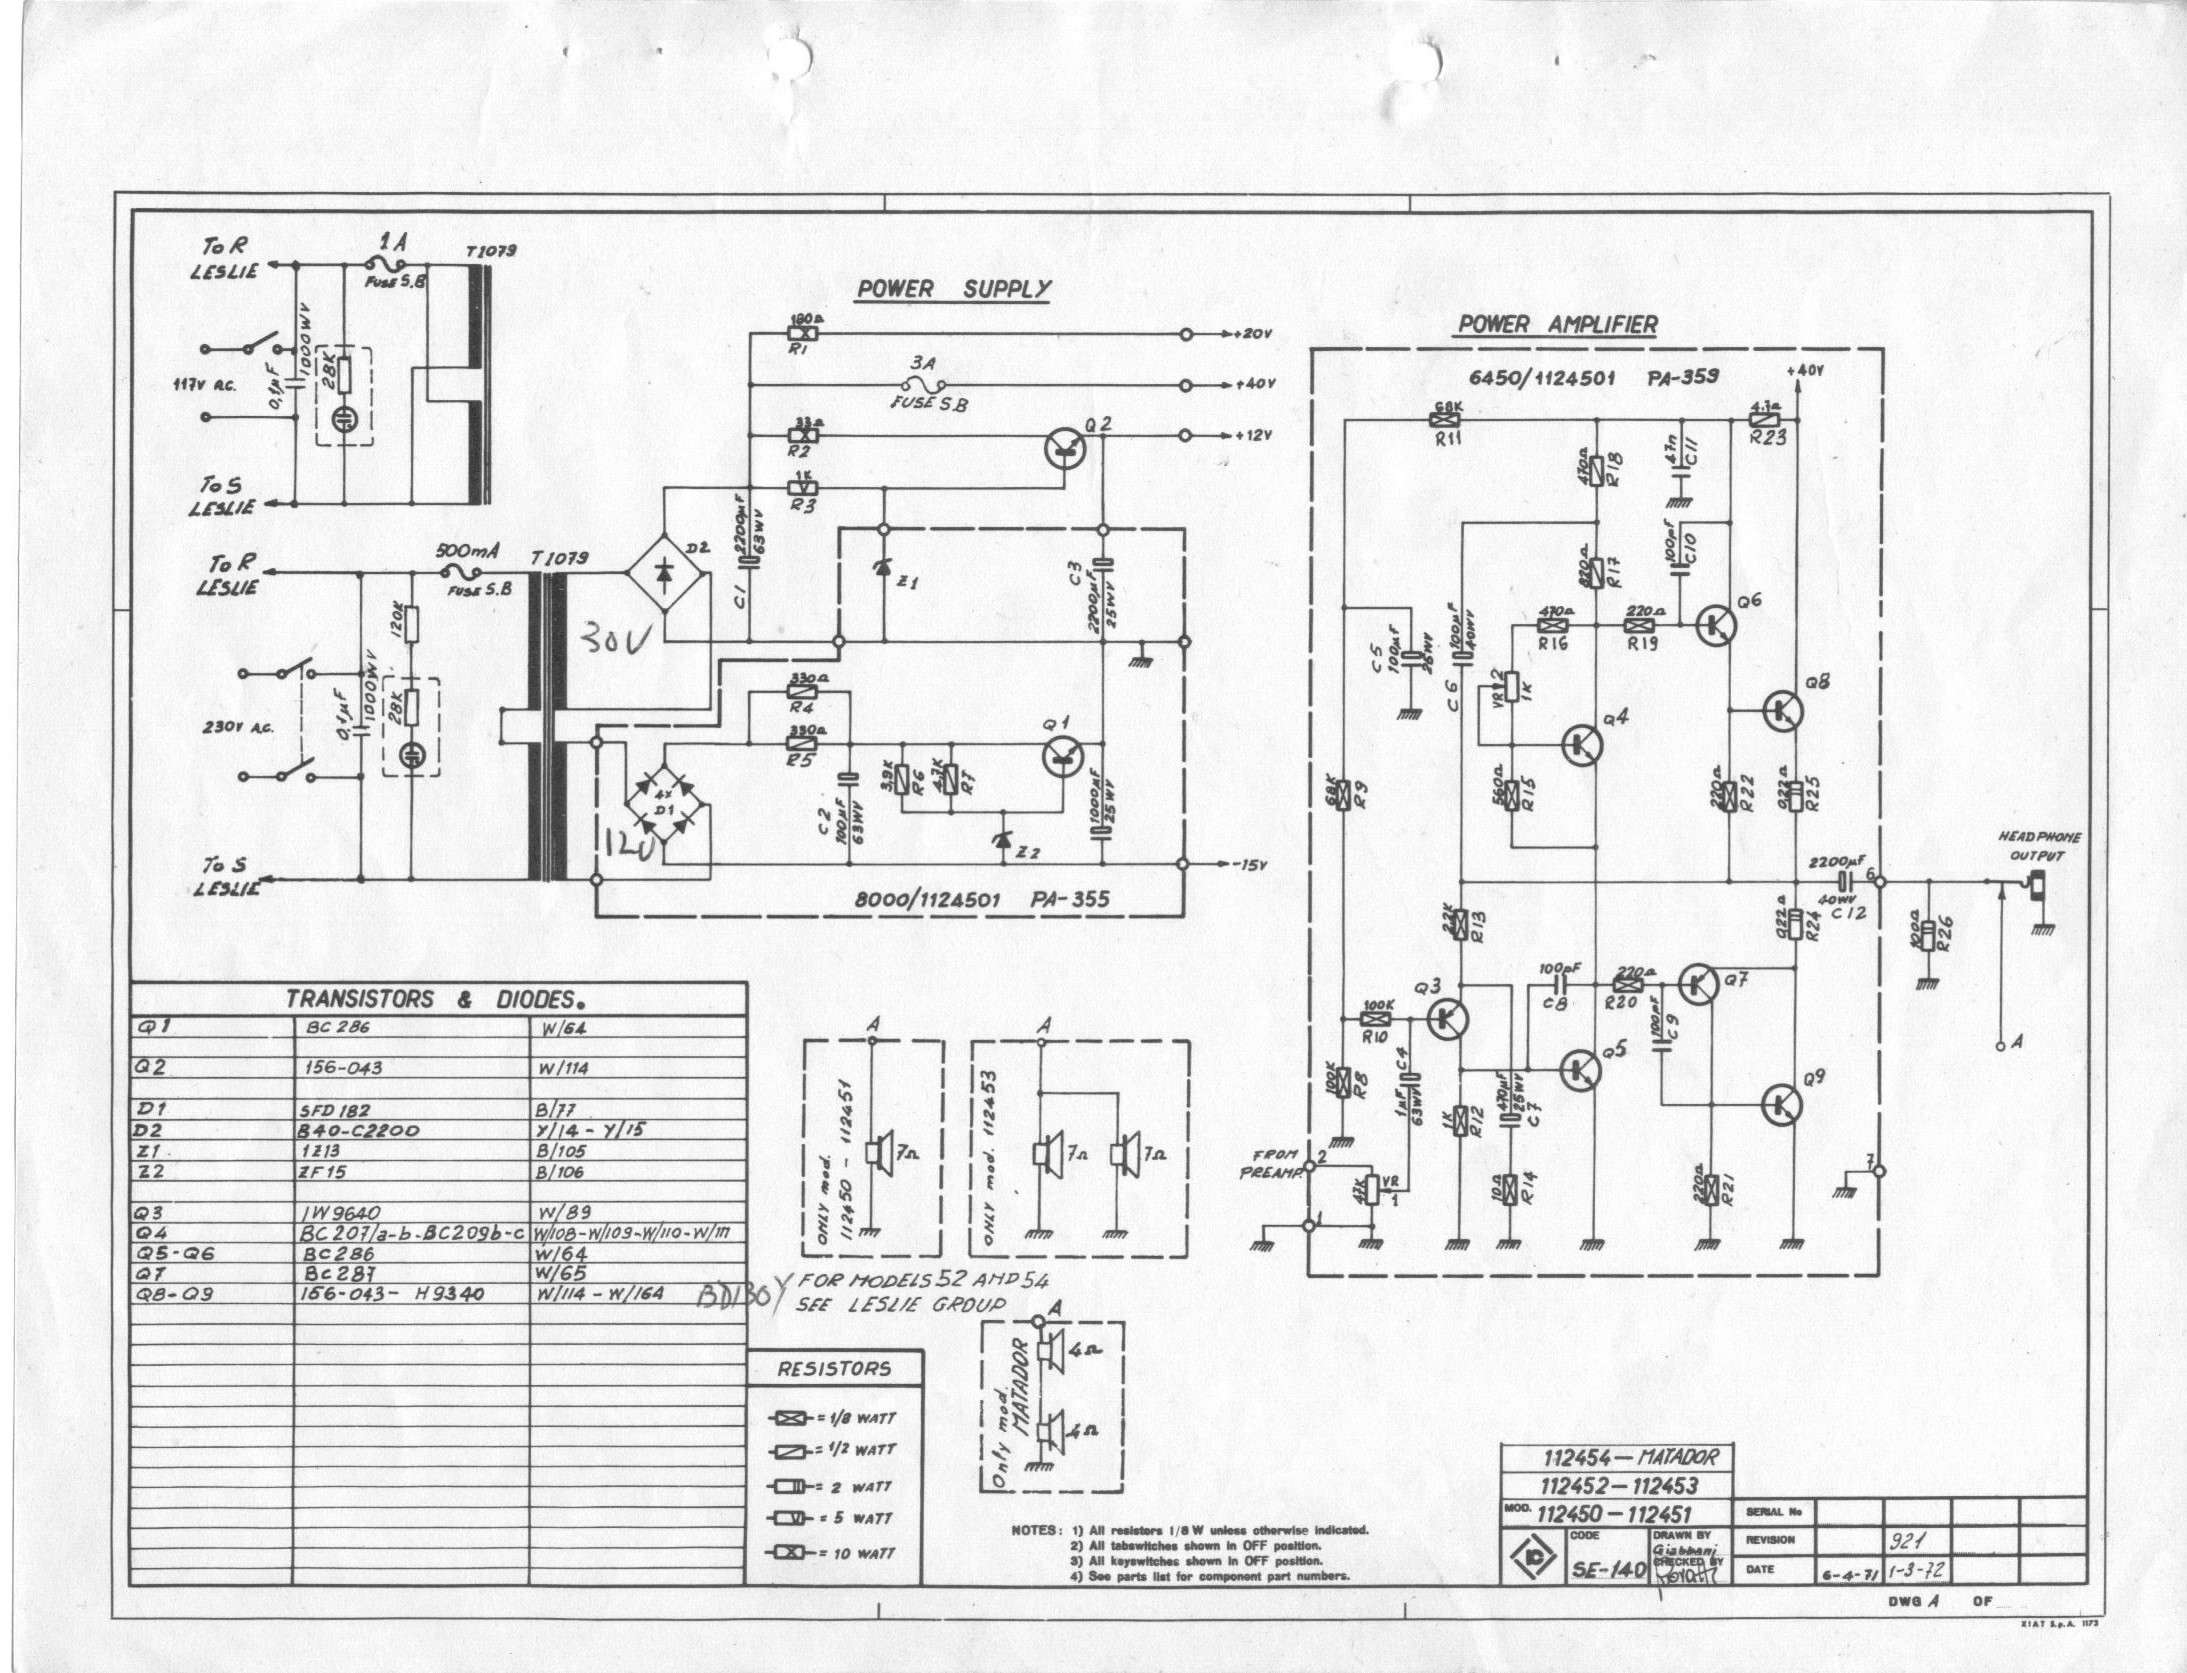 Schematics for Citofono farfisa schema